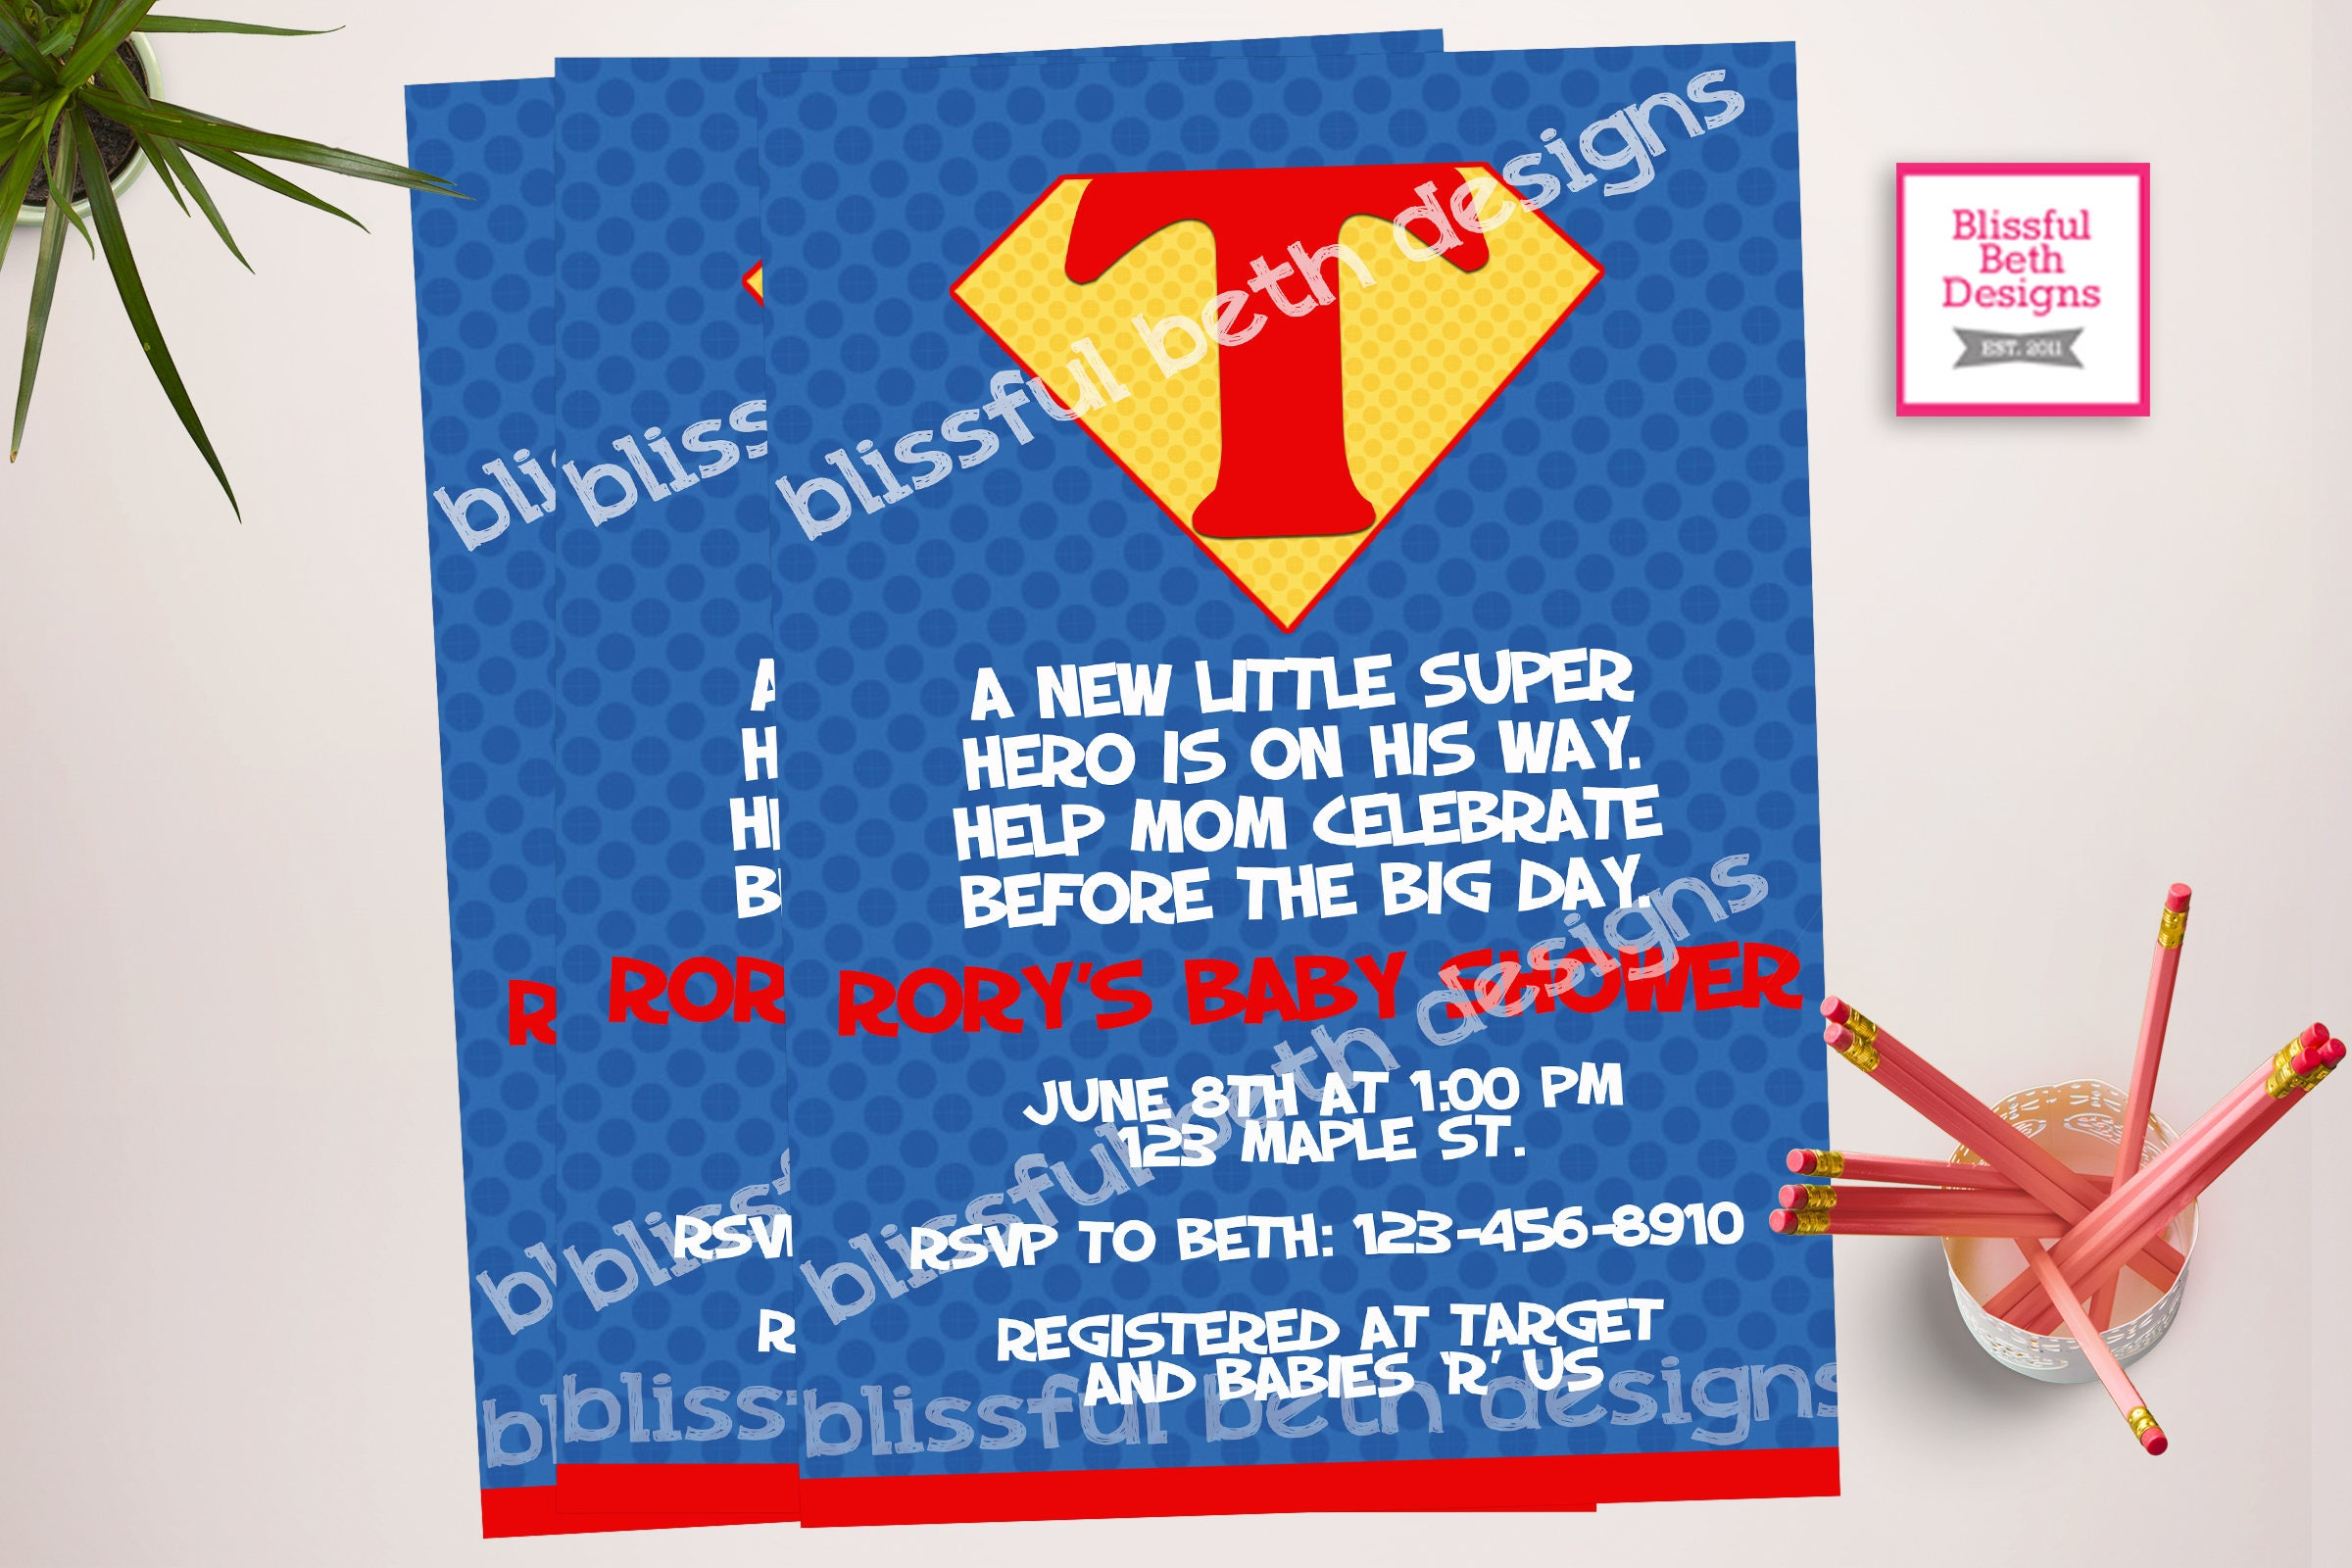 SUPERMAN BABY SHOWER, Superman Baby Shower Invitation, Supergirl Shower  Invite, Supergirl Shower, Superman Shower, Super Baby